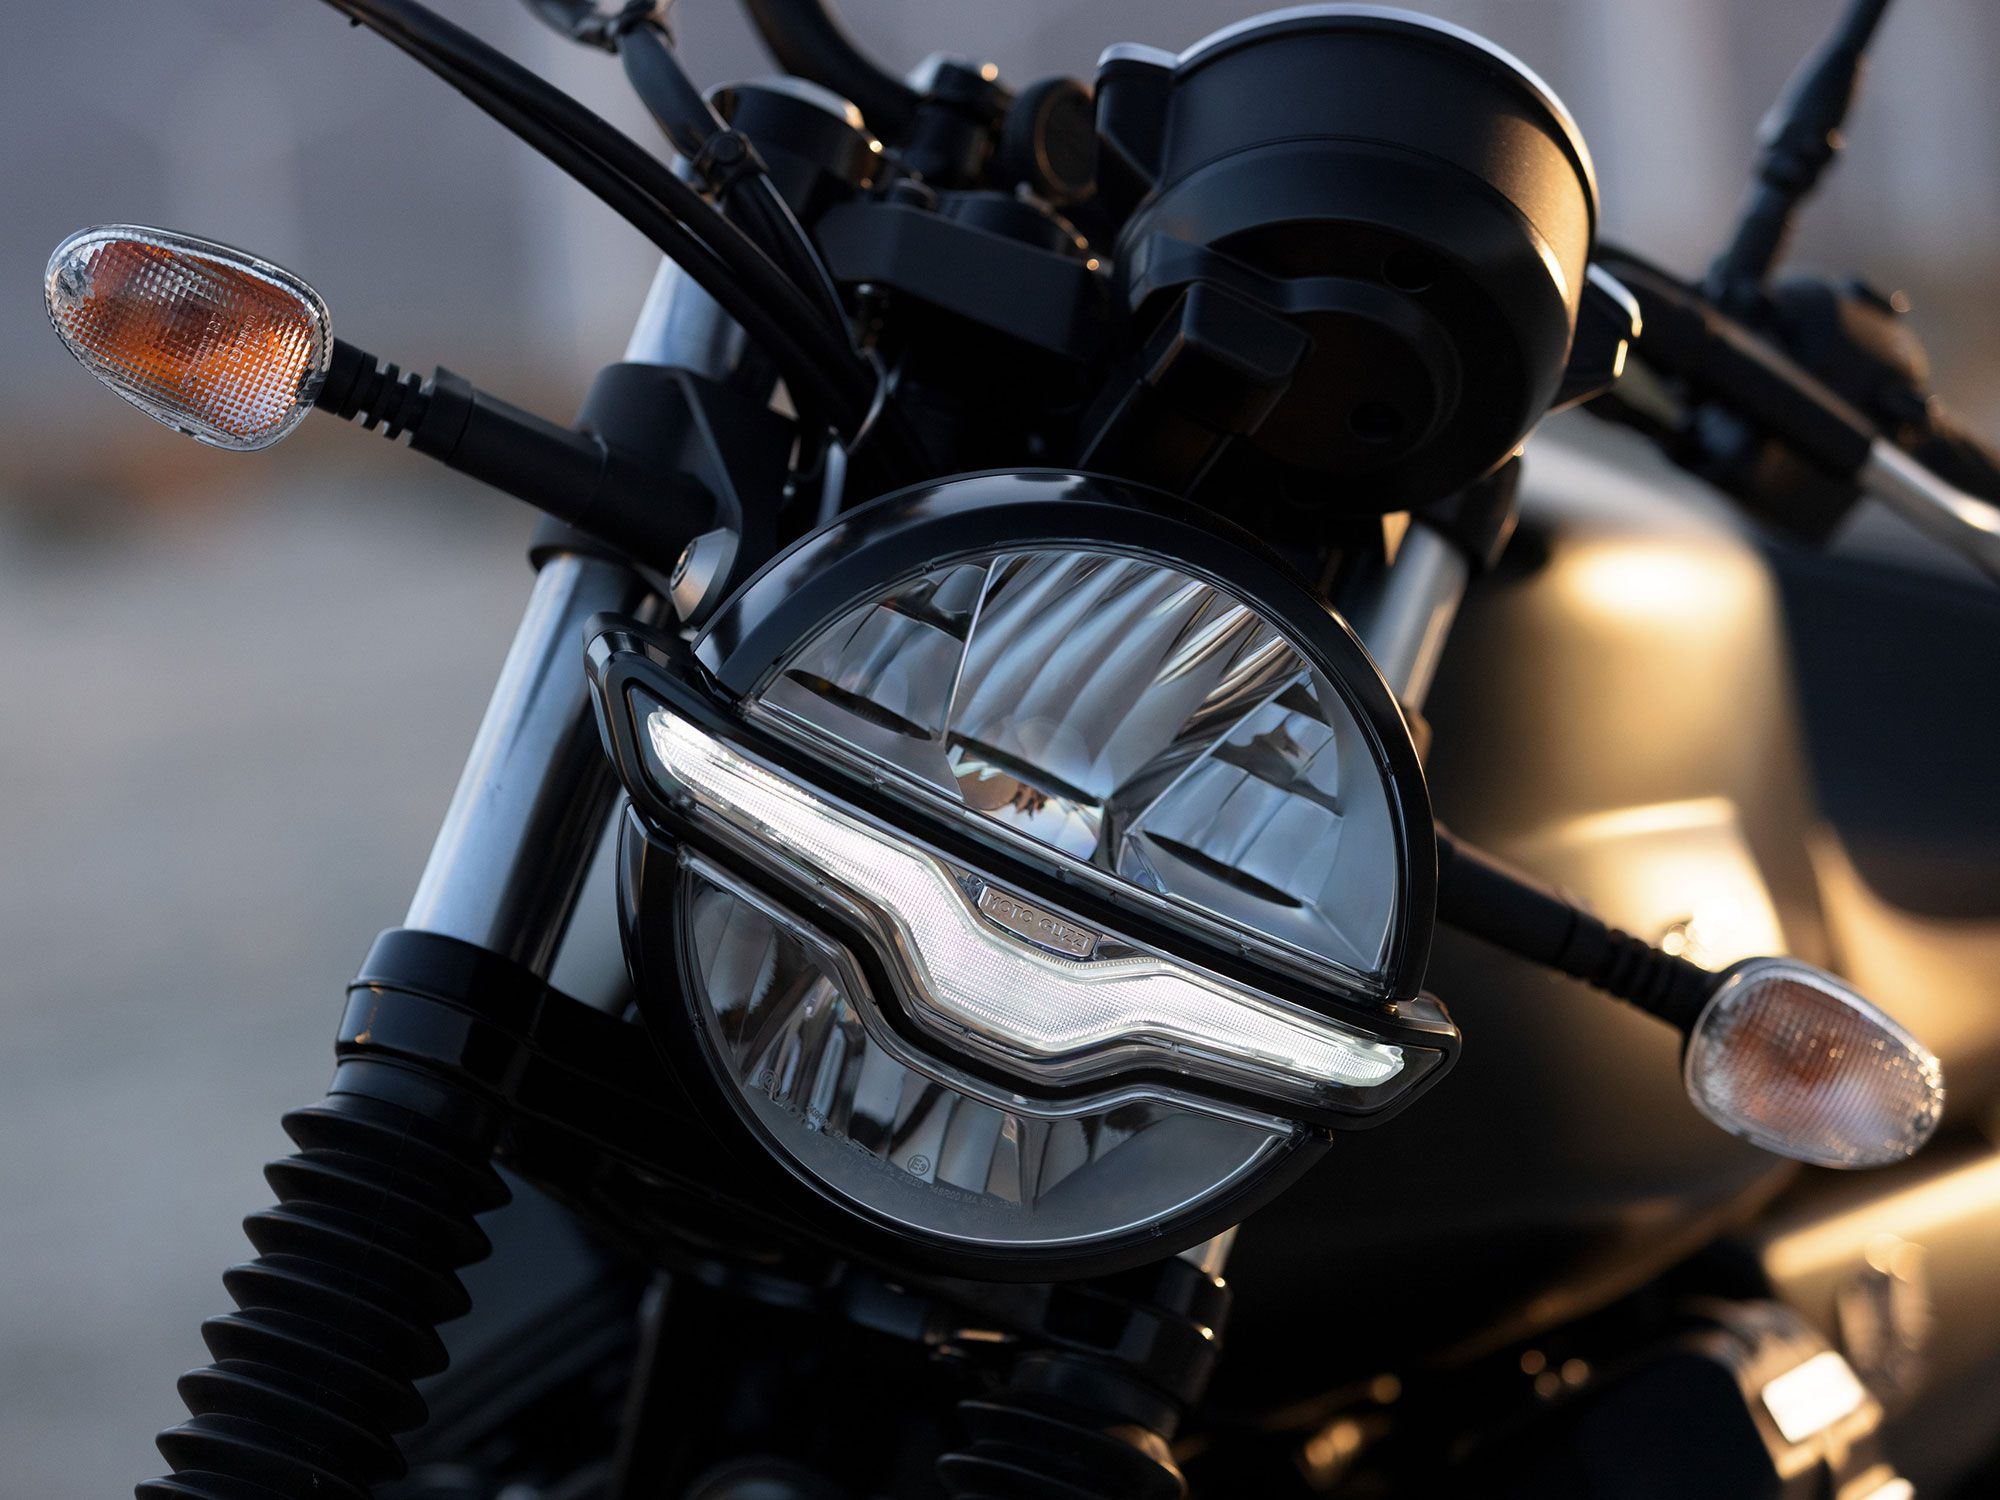 Subtle Moto Guzzi branding hides throughout the bike, like the eagle silhouette that serves as a daytime running light.